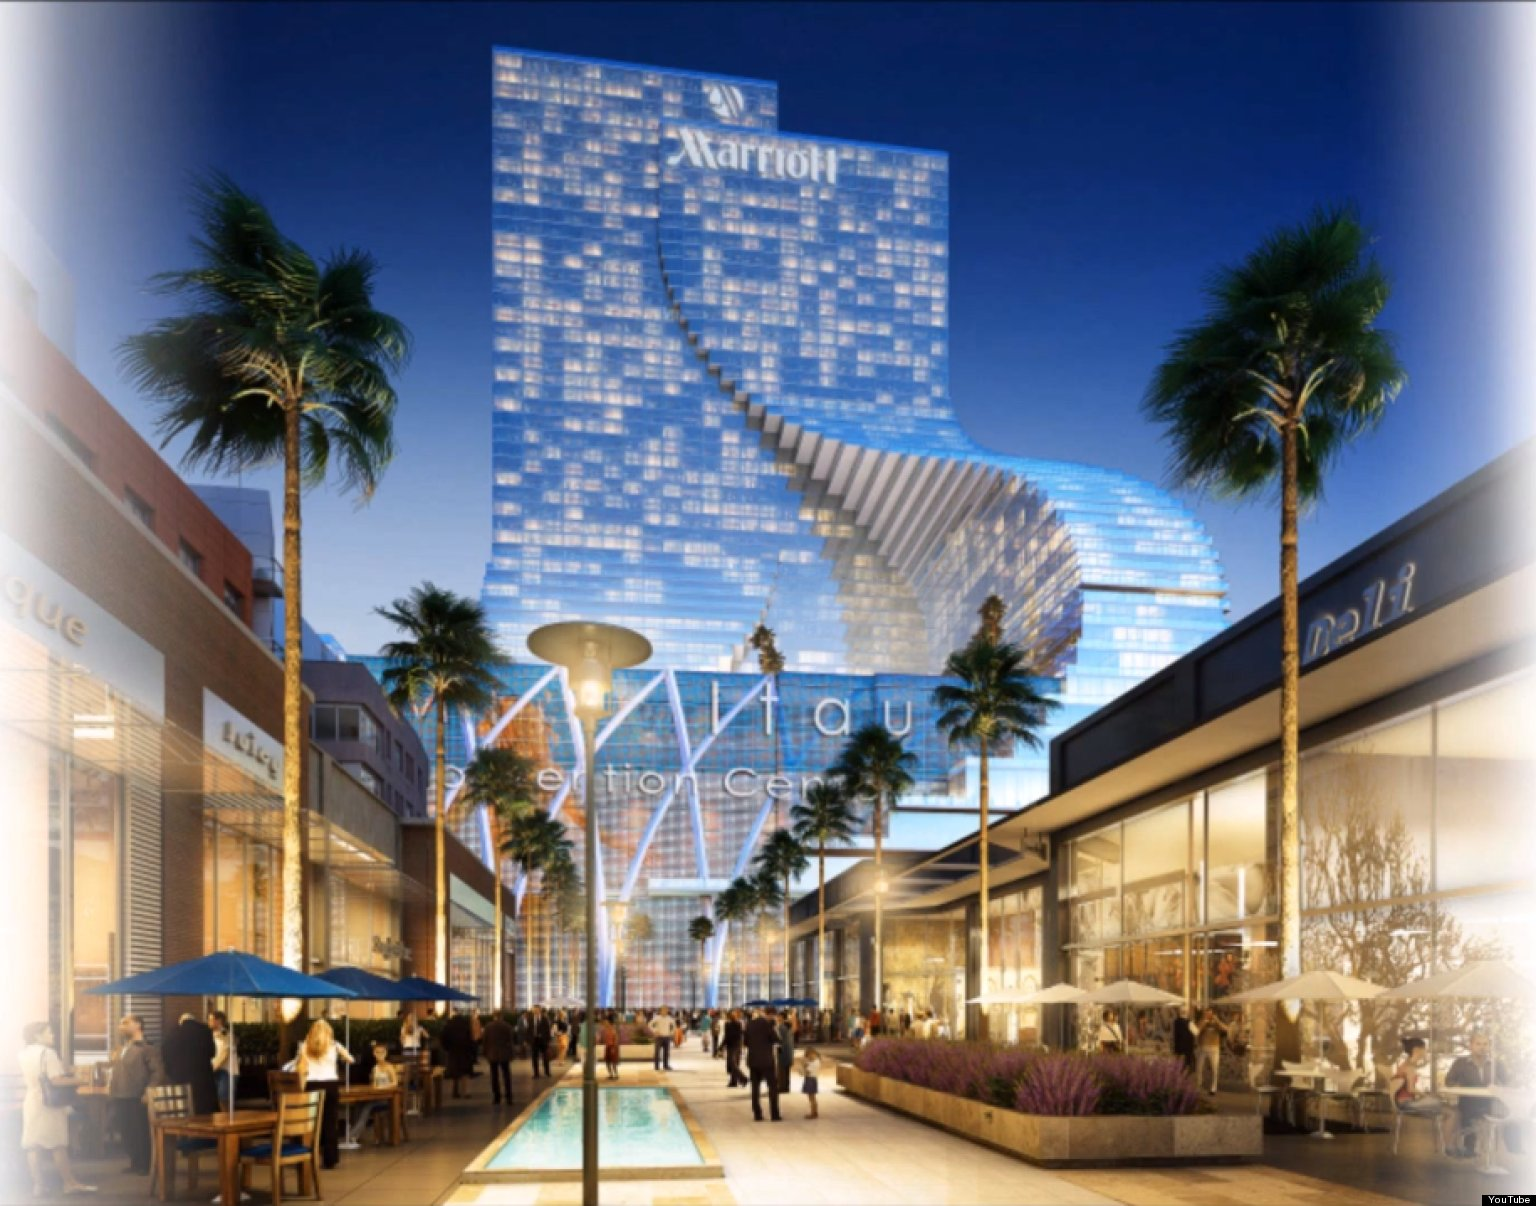 Convention Center Hotel Planned For Downtown Miami World